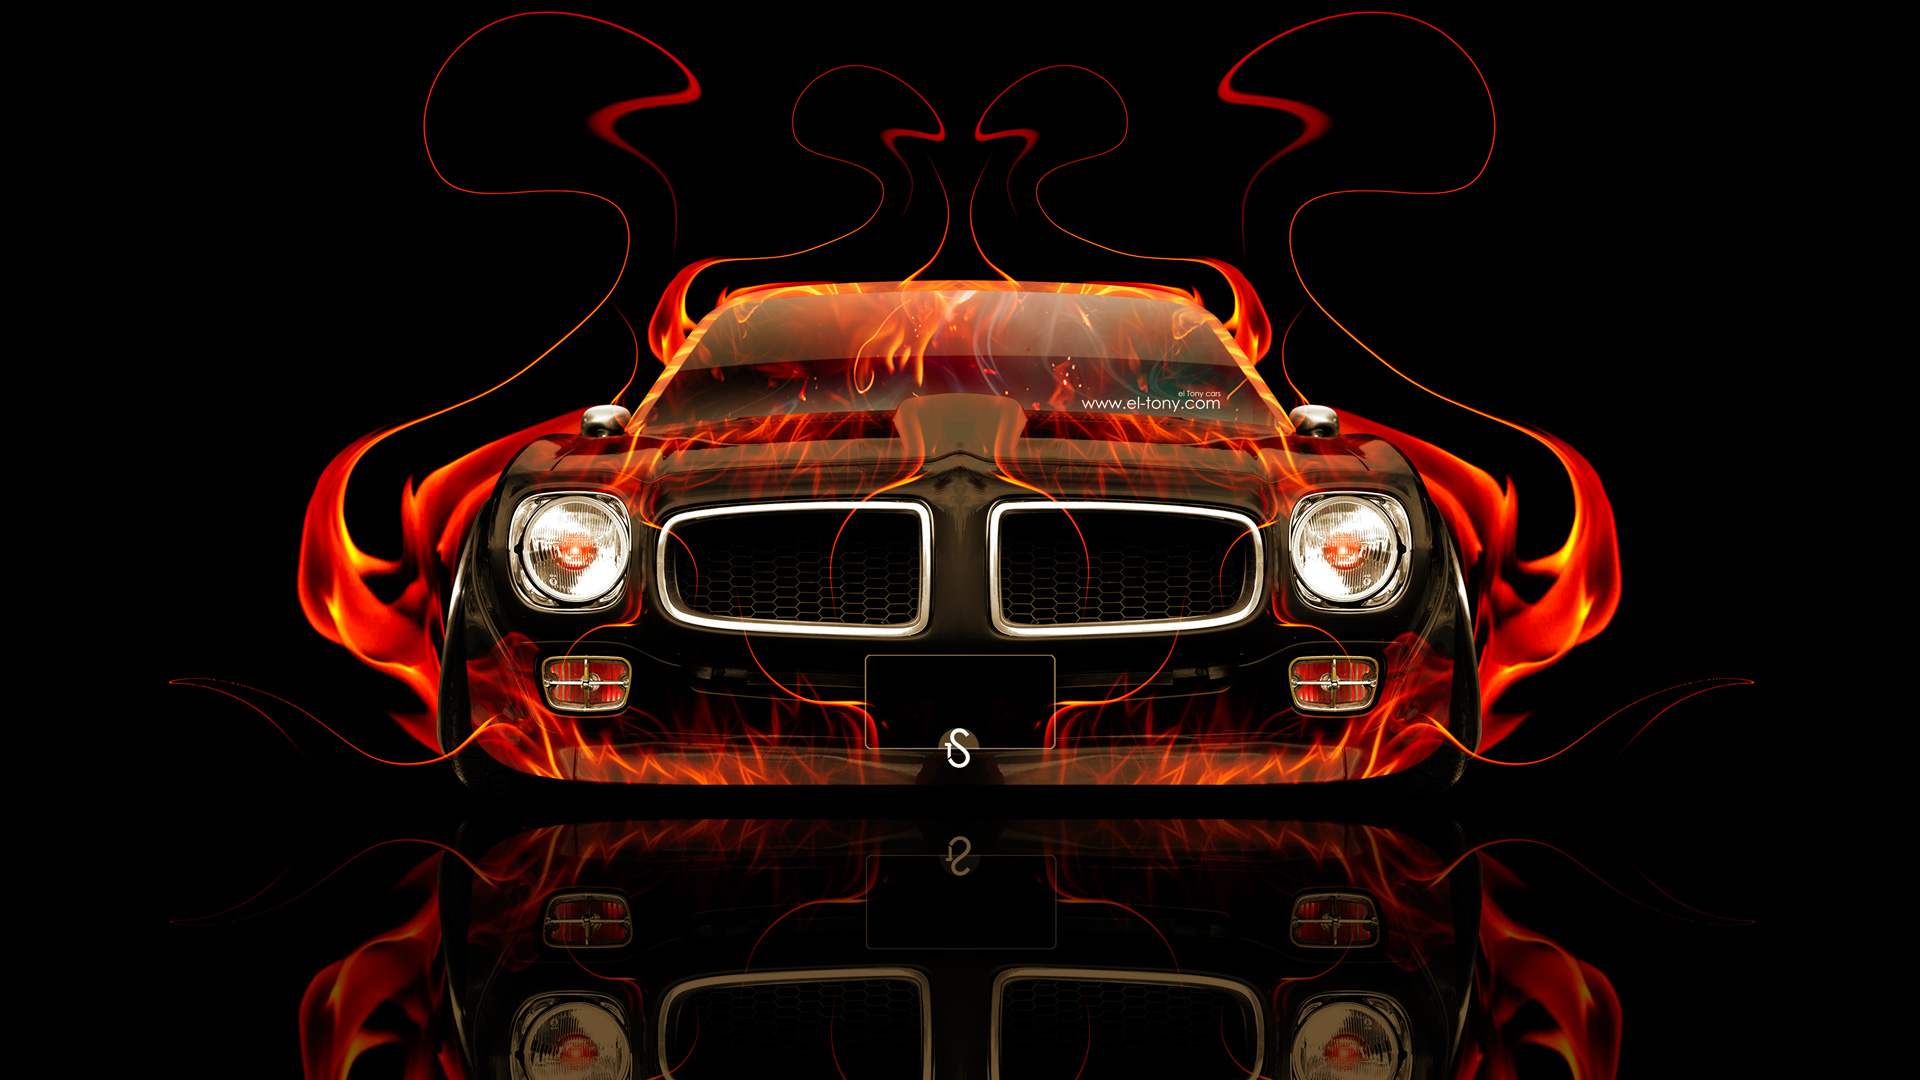 Pontiac-Firebird-Front-Fire-Abstract-Car-2014-HD-Wallpapers-design-by-Tony-Kokhan-[www.el-tony.com]